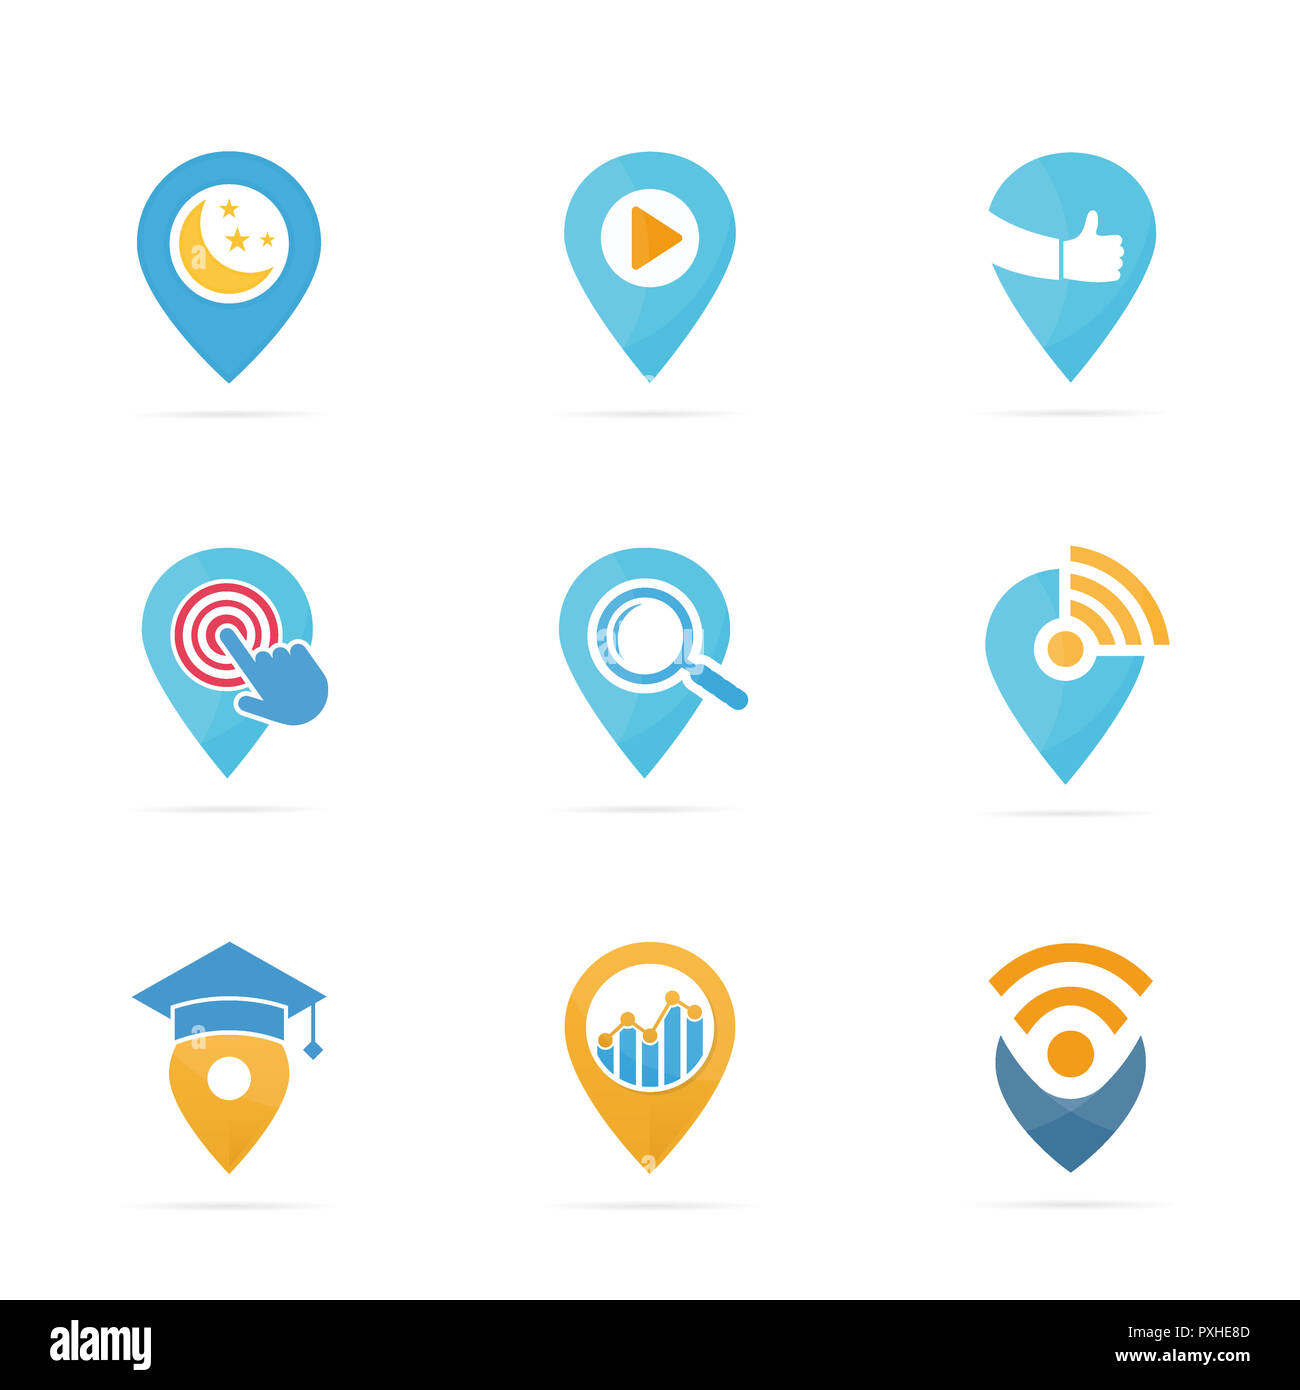 Set of map pointer logo combination. GPS locator and pin symbol or icon. Unique navigation and marker logotype design template. - Stock Image